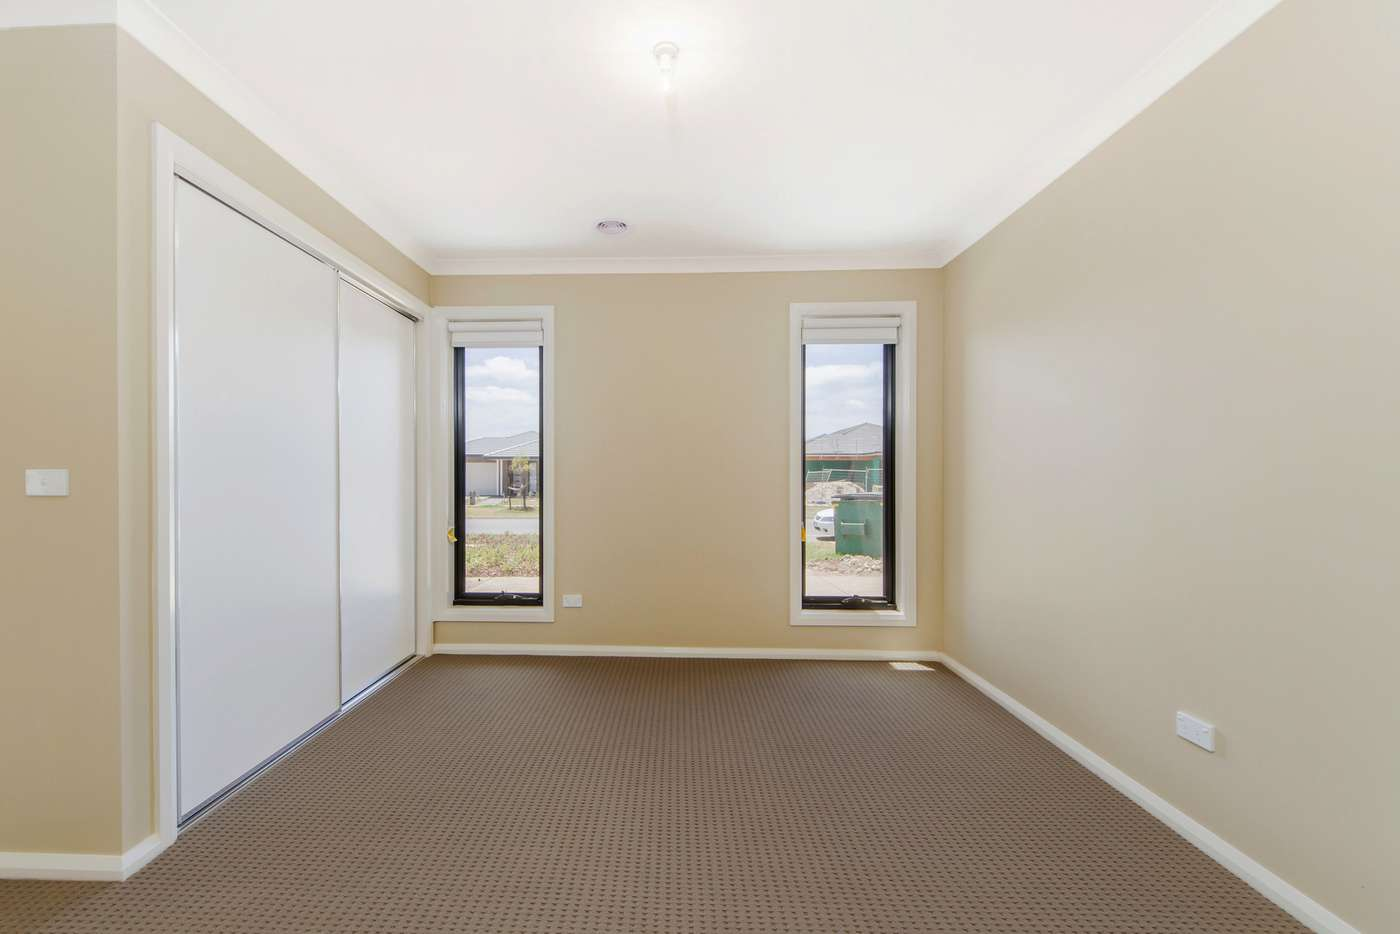 Sixth view of Homely house listing, Address available on request